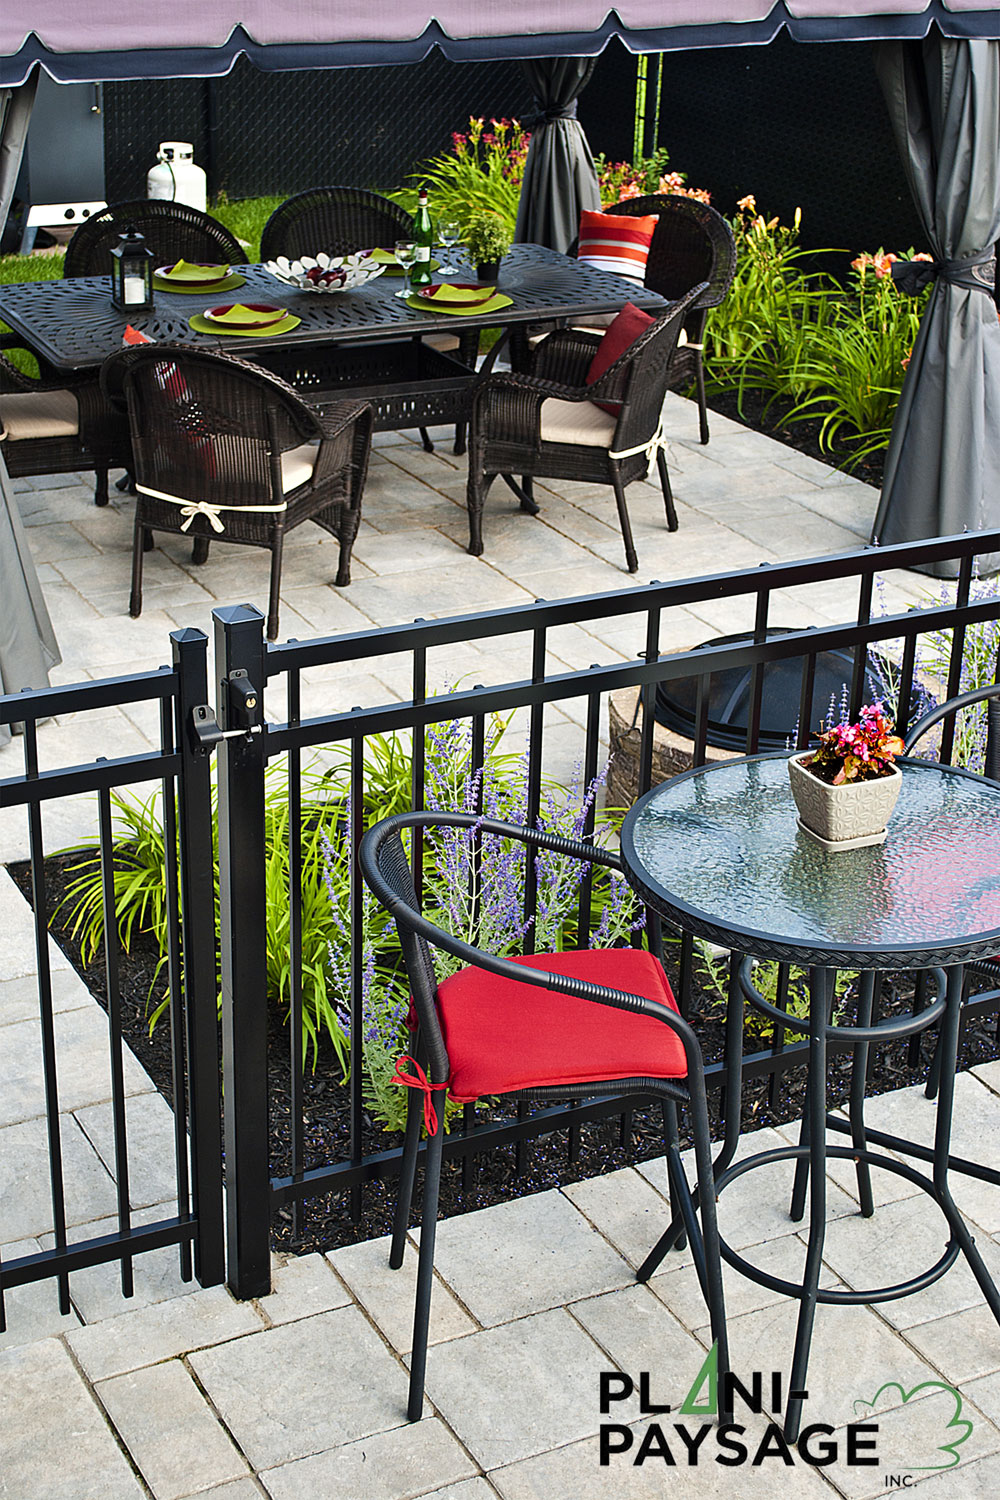 Coin bistro ext rieur repentigny plani paysage for Idee paysagement exterieur